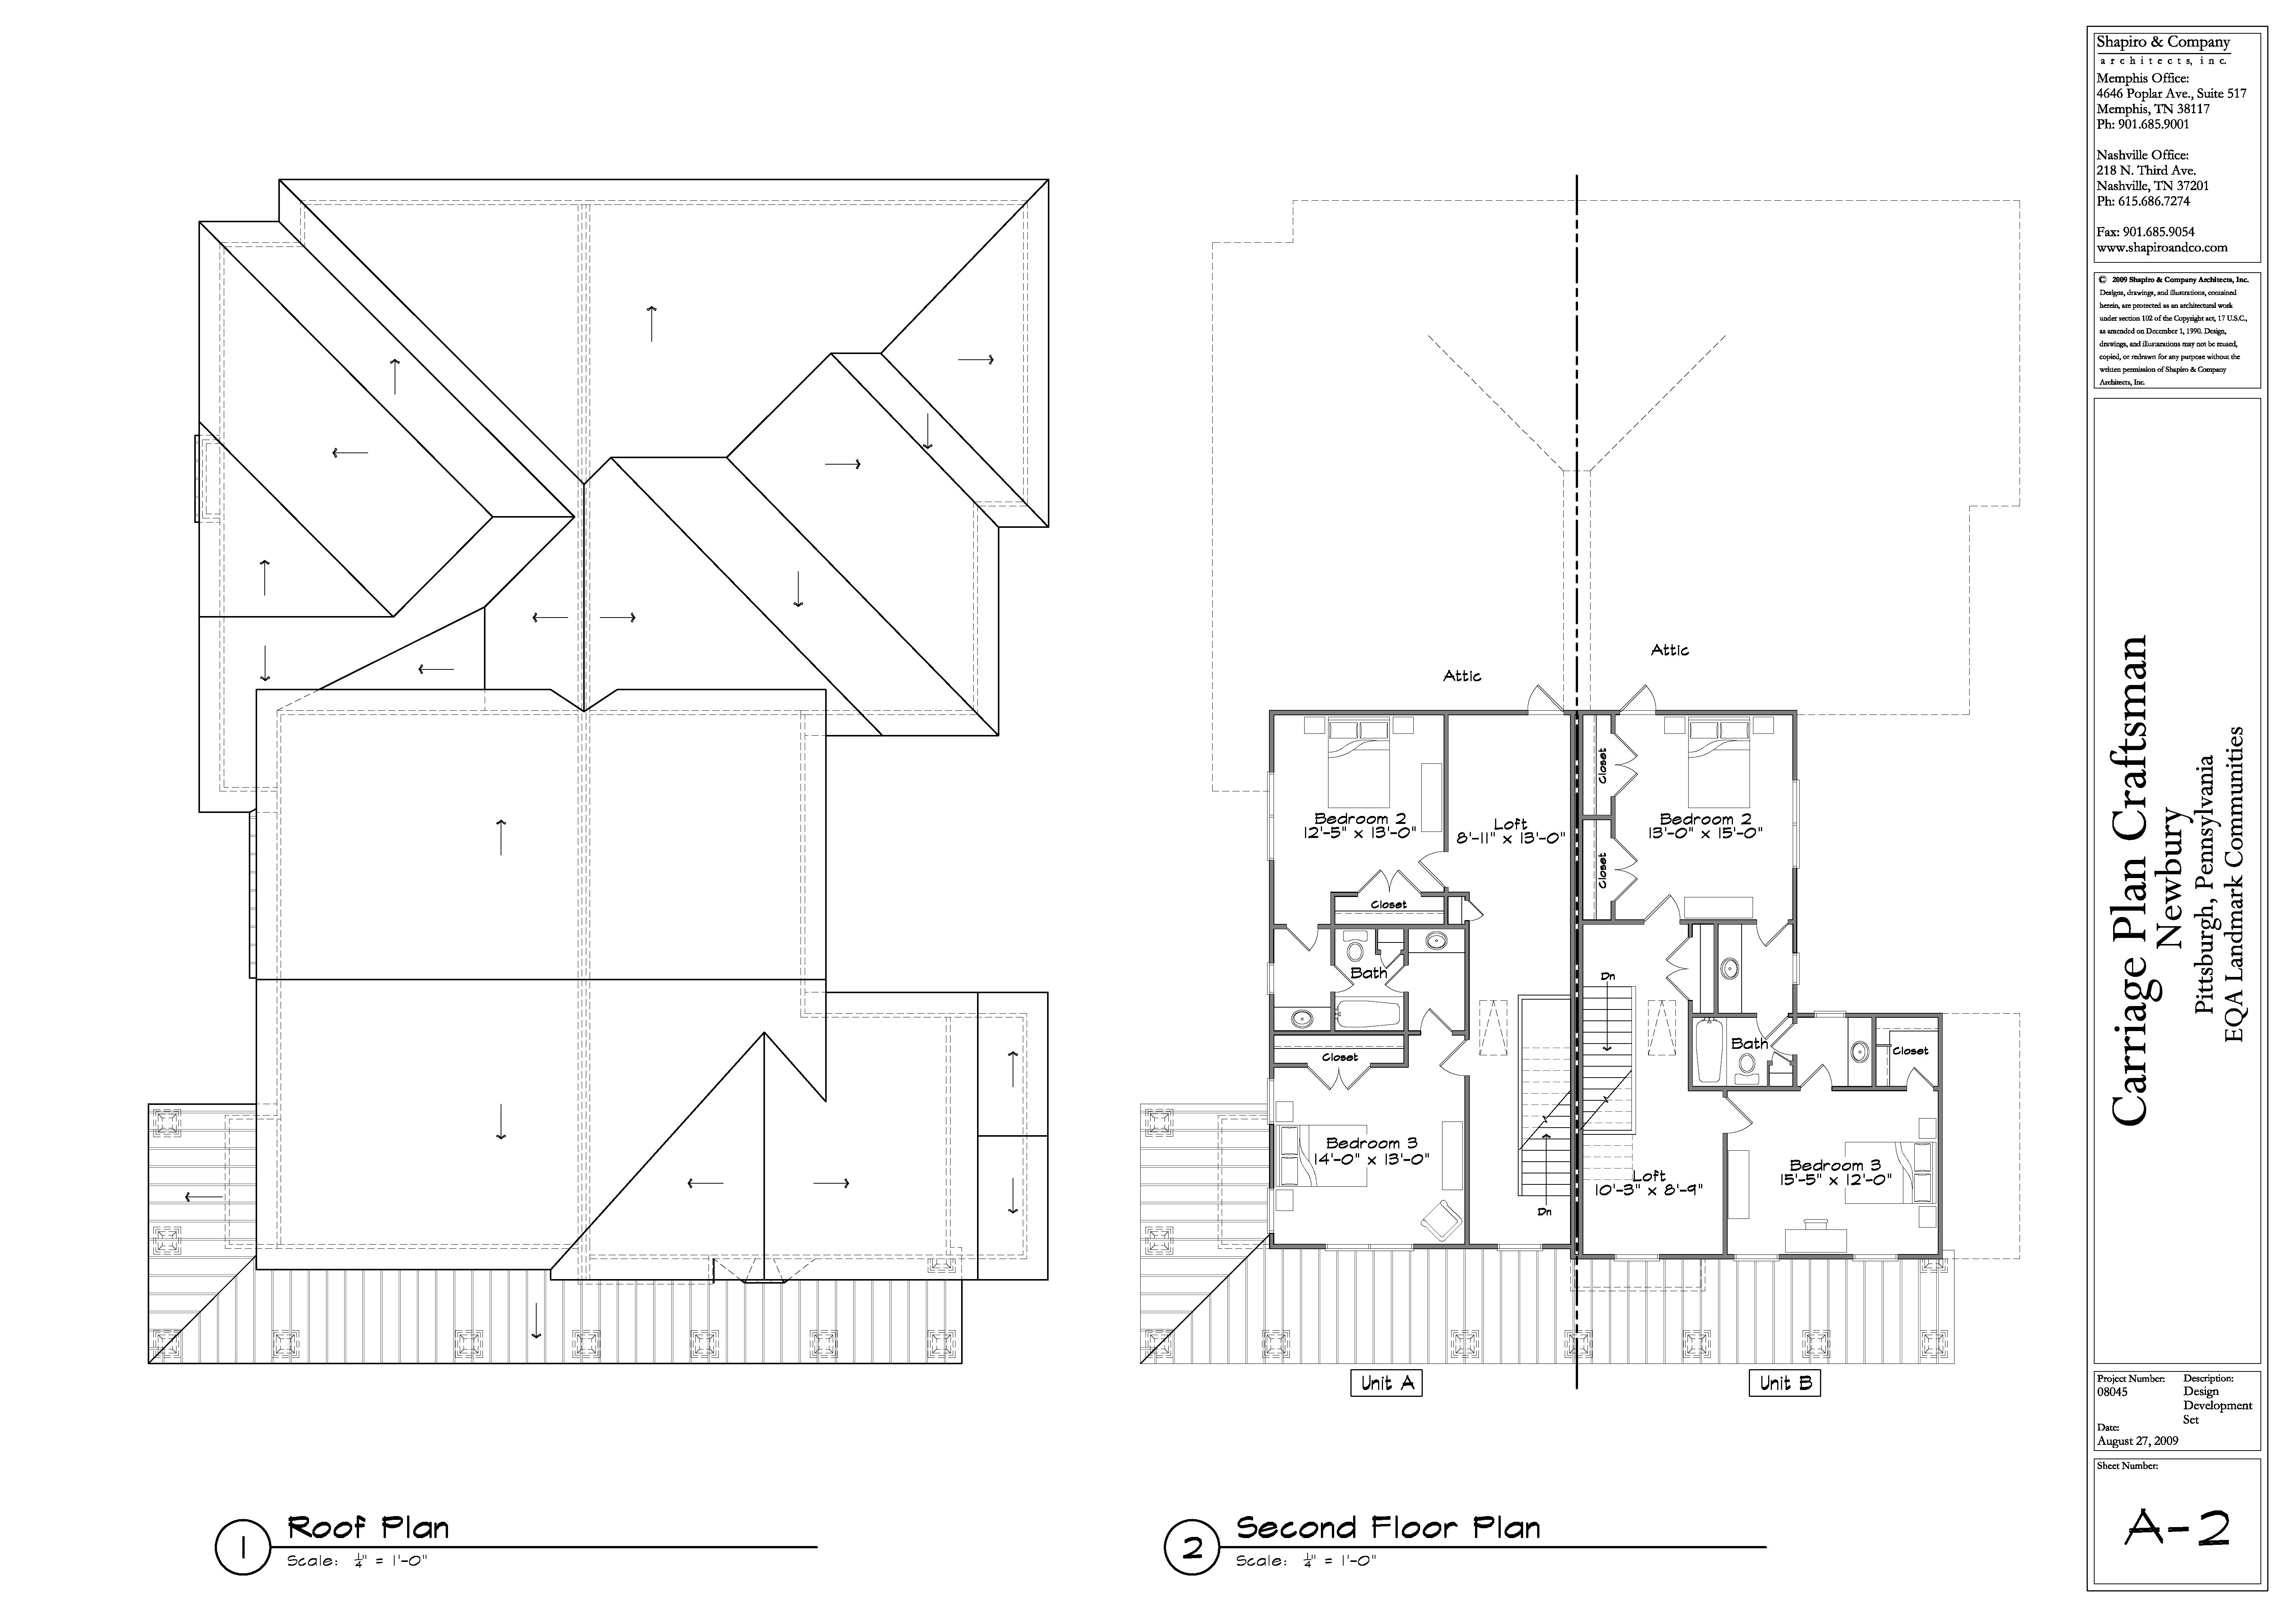 House roof drawing at getdrawings free for personal use house 6018x4289 roof plan ccuart Choice Image